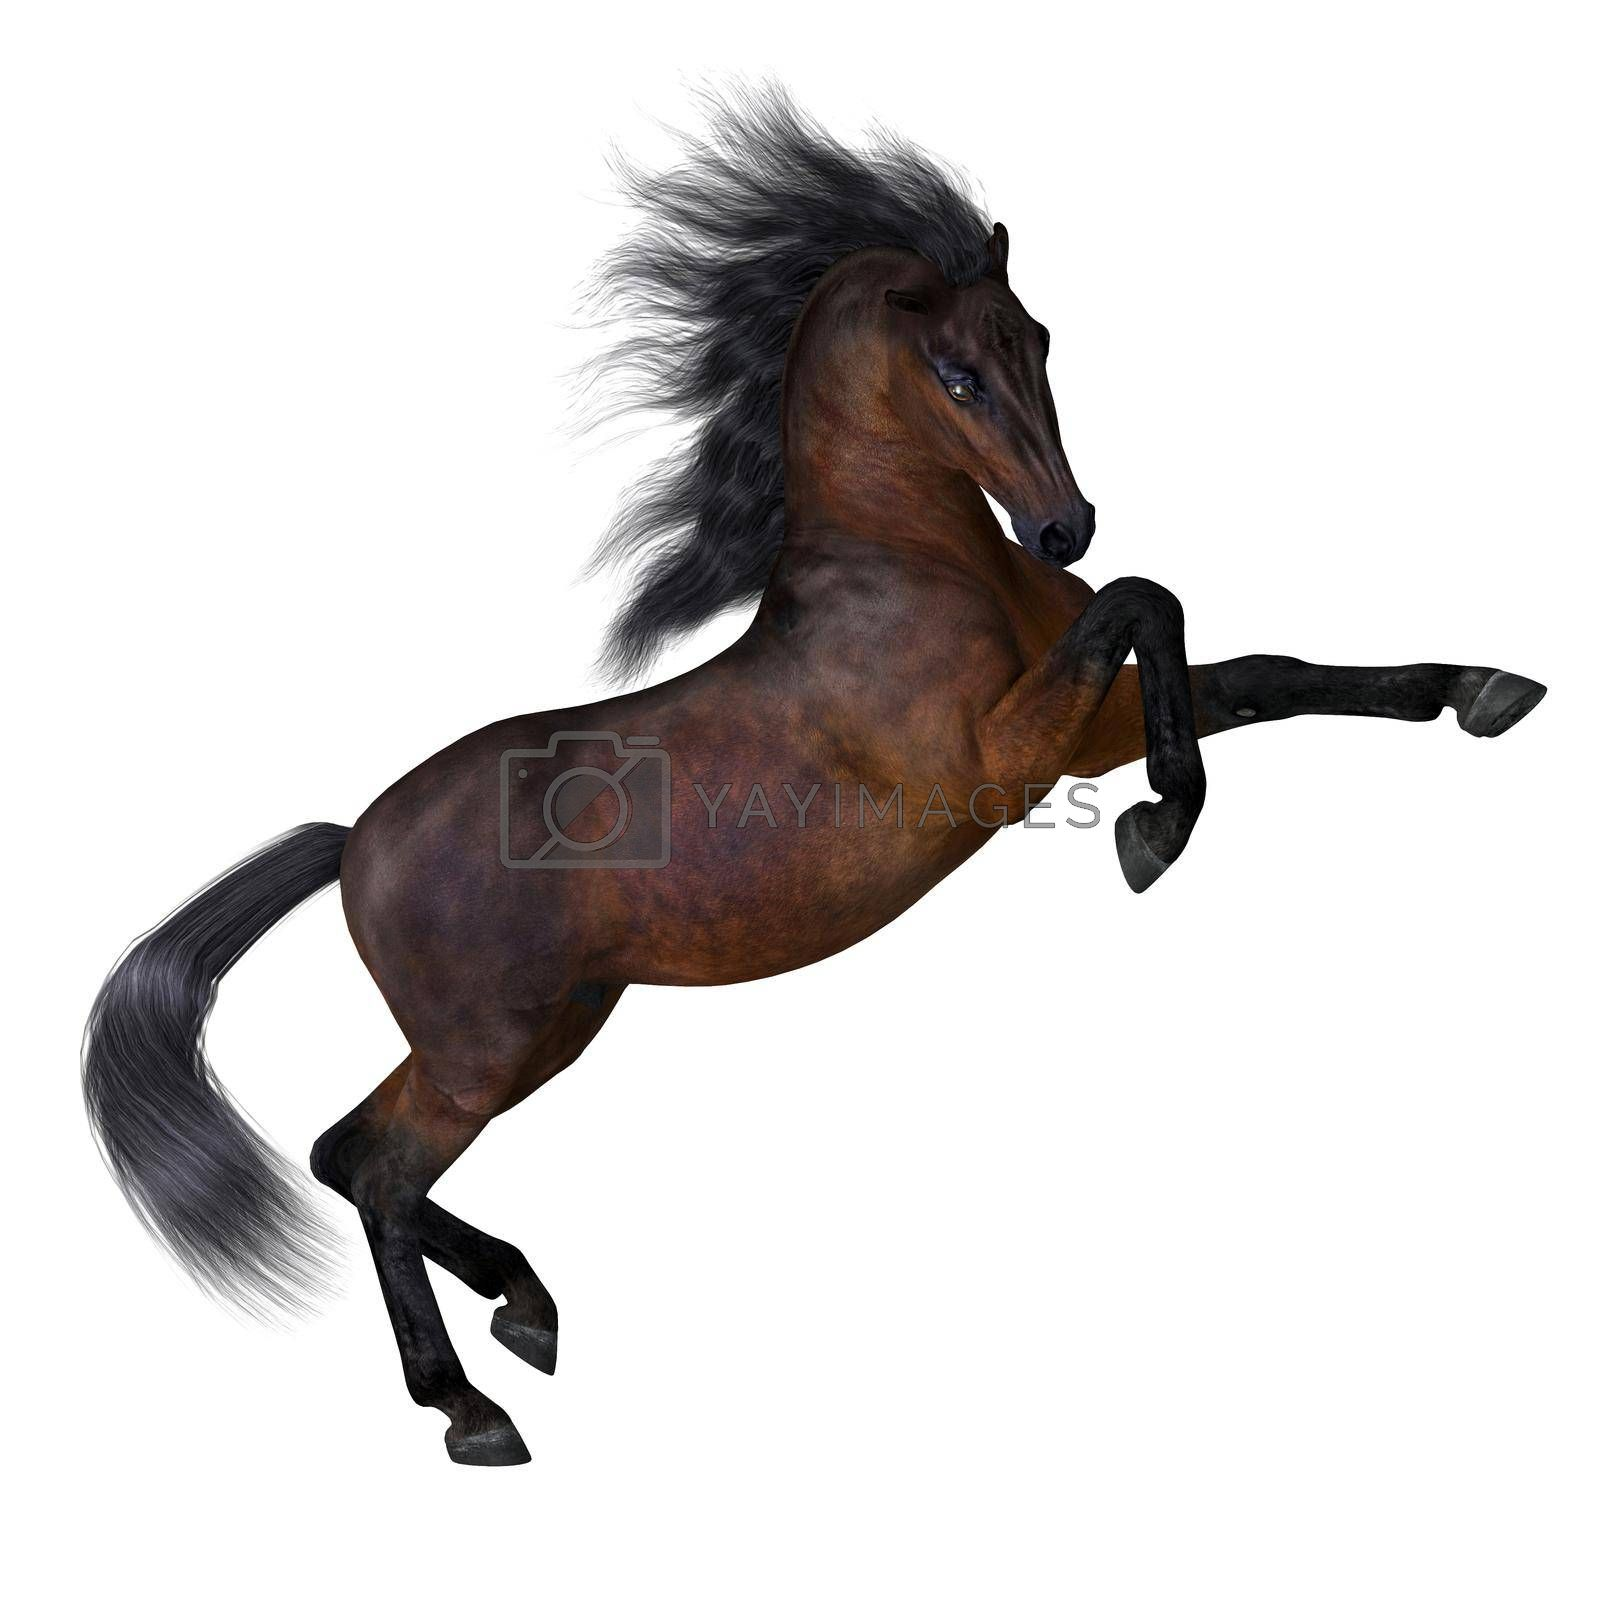 Royalty free image of Bay Horse by Catmando